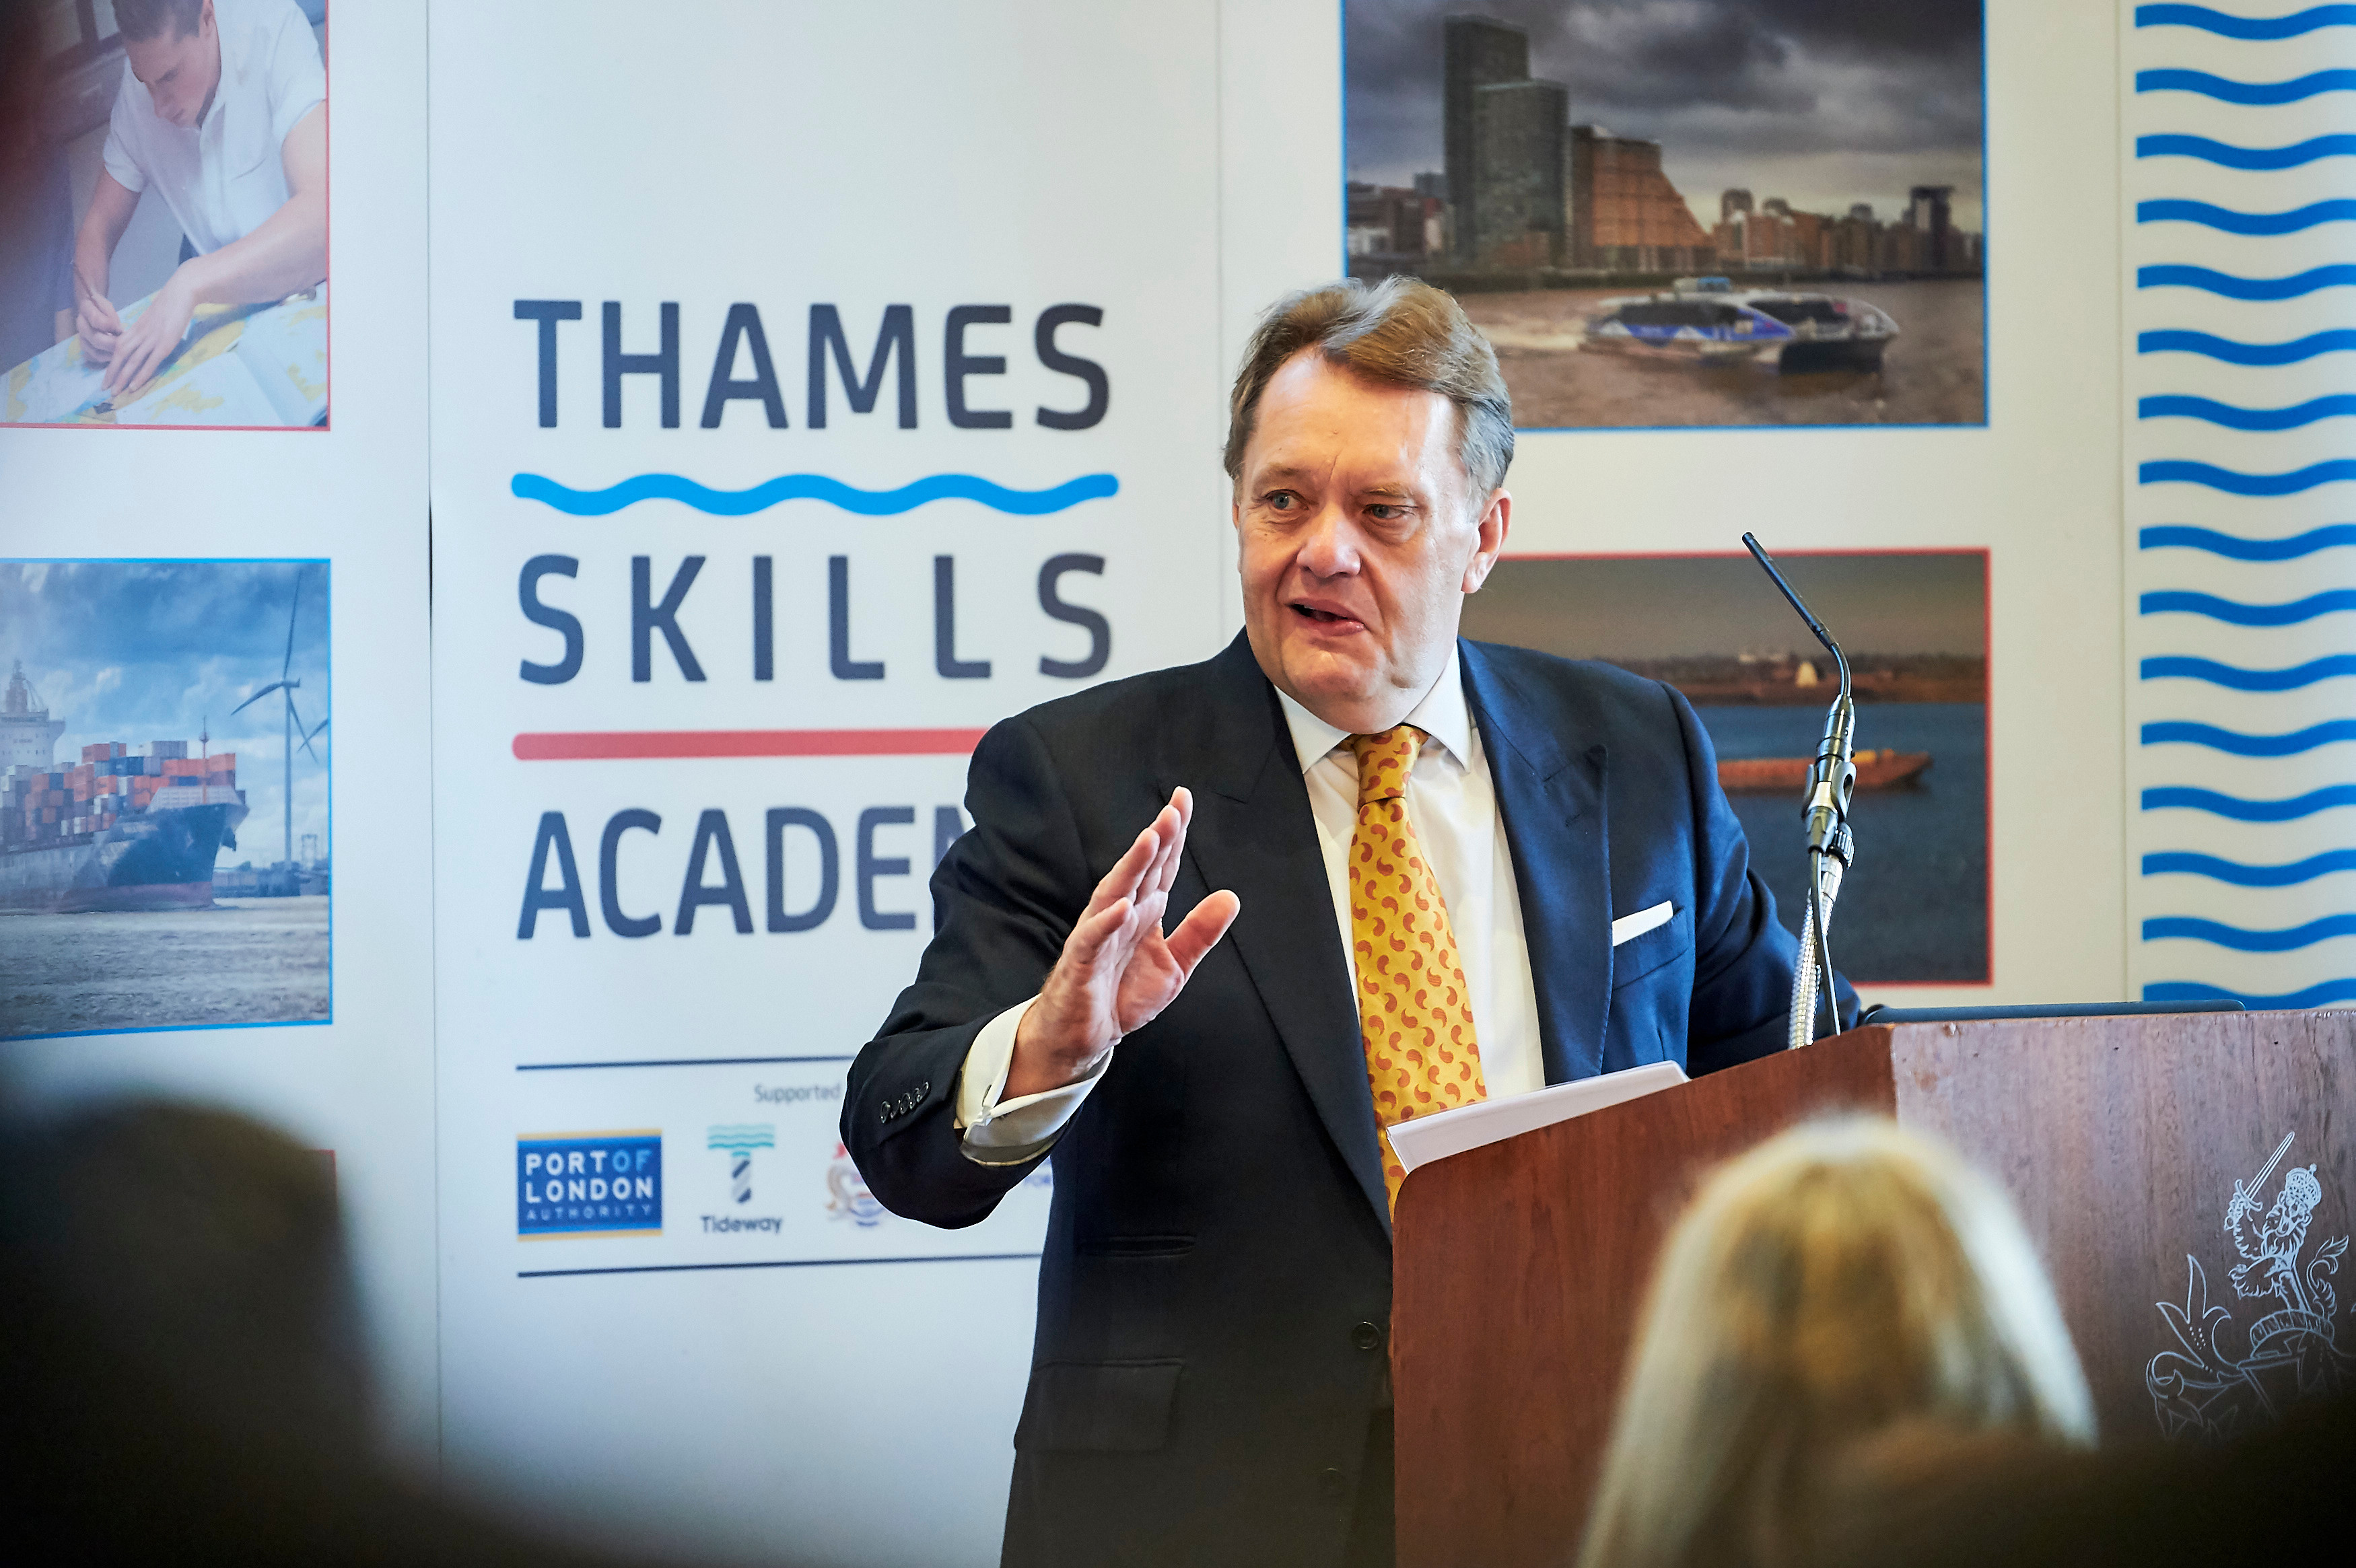 Shipping Minister Hails Thames Careers Open Day